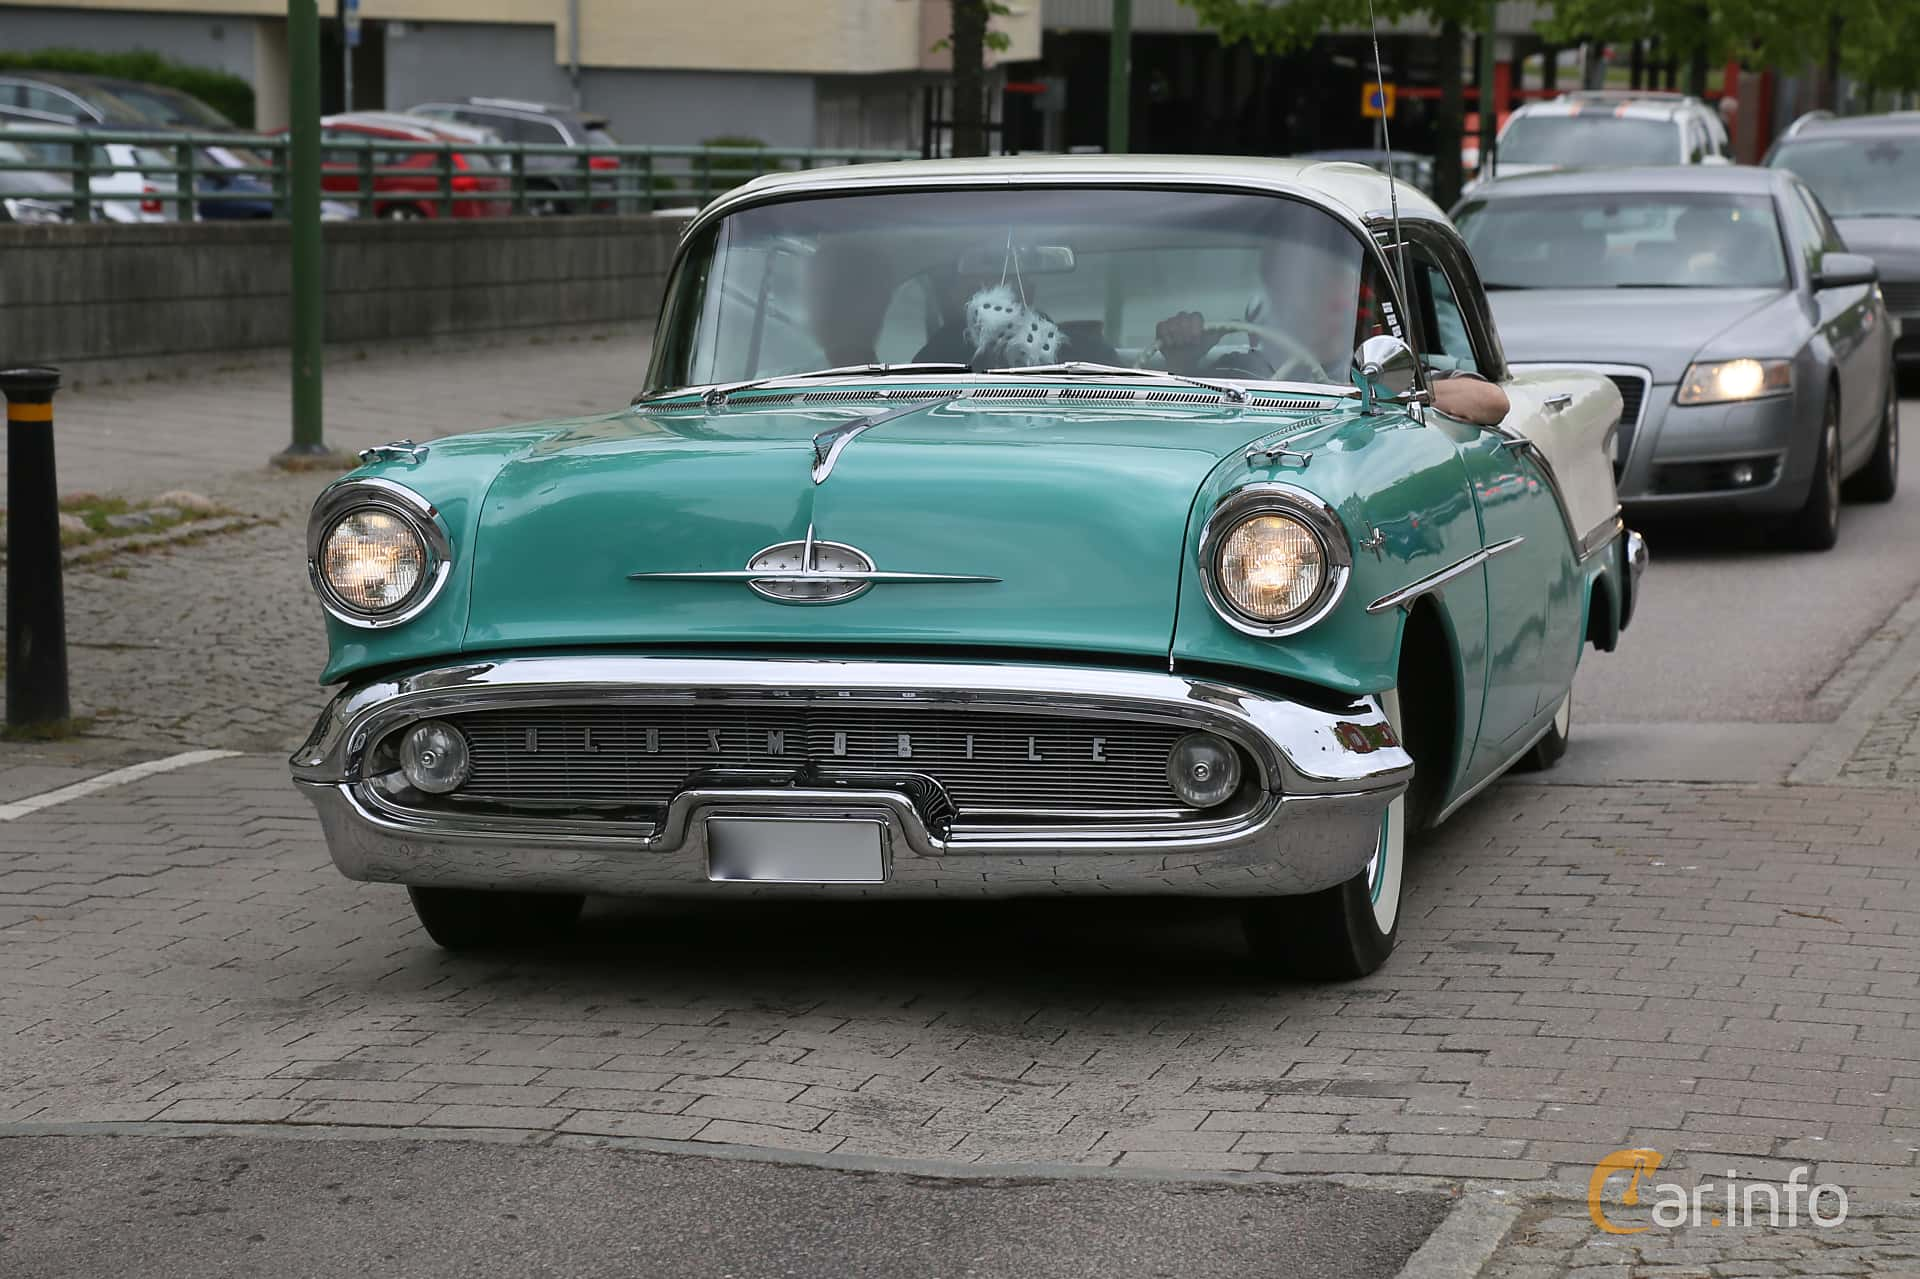 Oldsmobile Starfire 98 Holiday Sedan 6.1 V8 Hydra-Matic, 281hp, 1957 at KungälvsCruisingen 2019